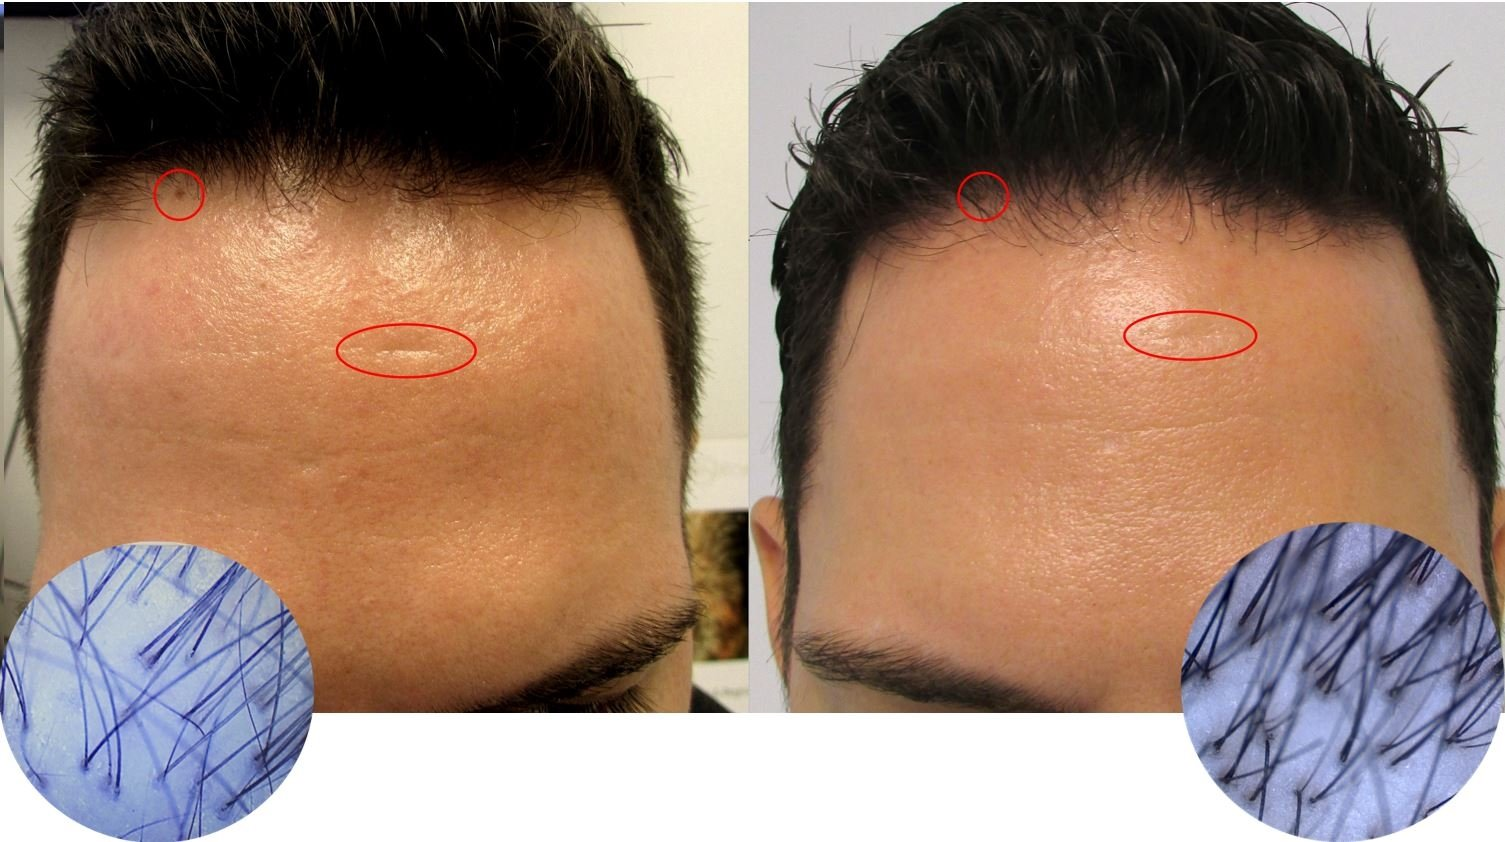 hair regrowth case study, hair growth reviews